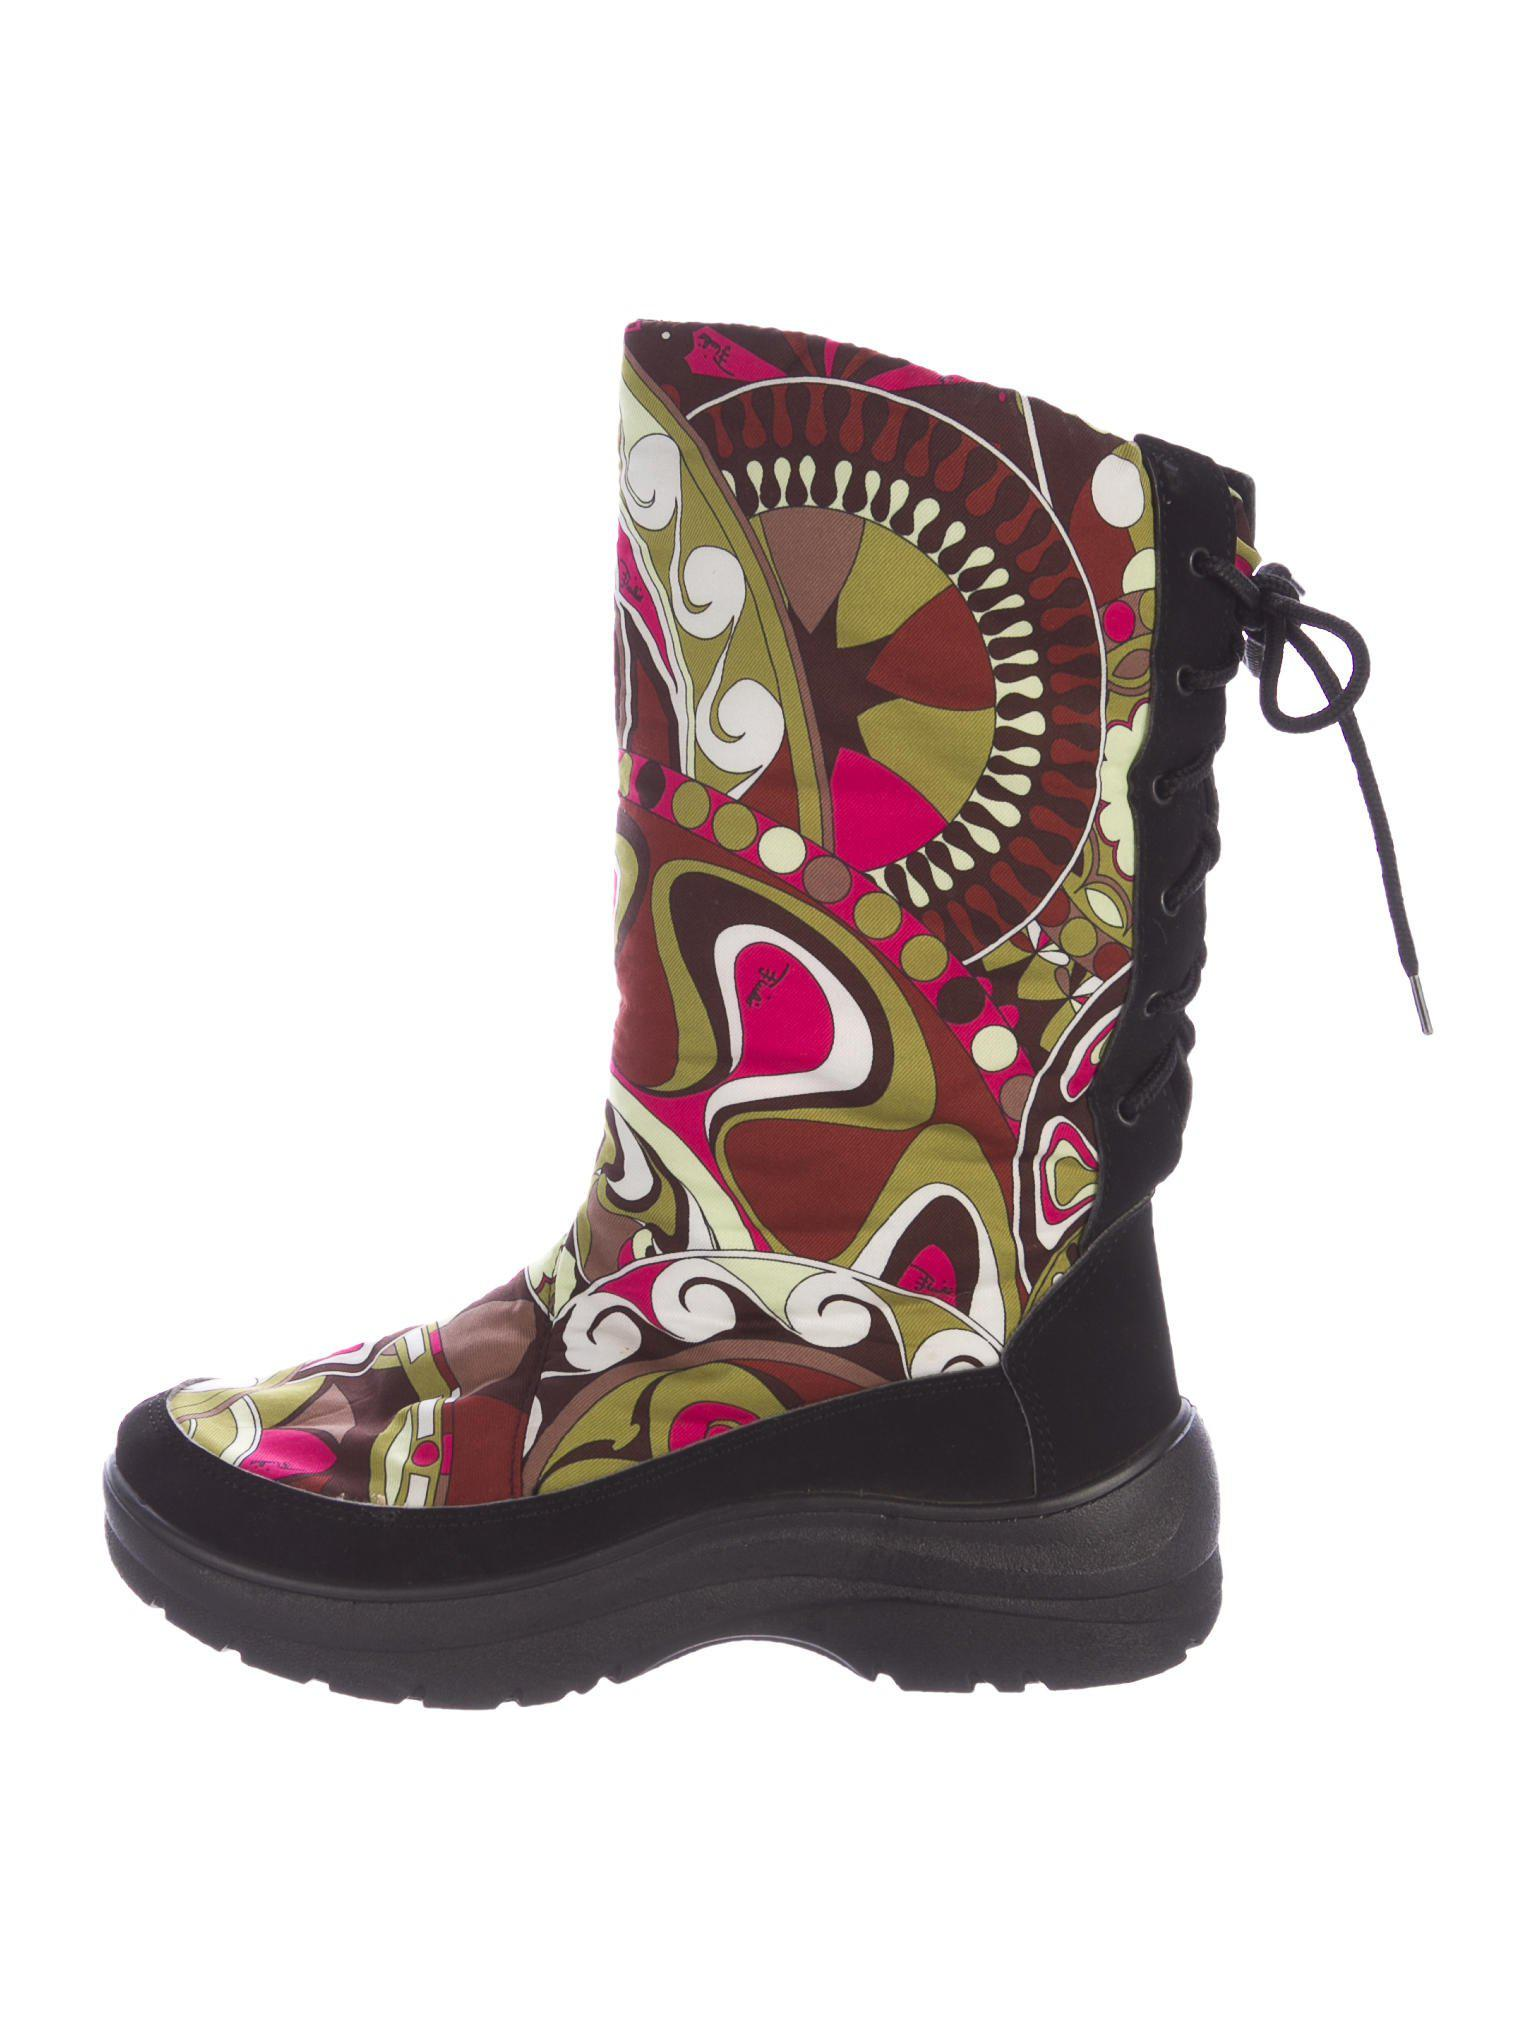 release dates for sale Emilio Pucci Printed Snow Boots looking for cheap price classic sale online clearance for sale Effw52